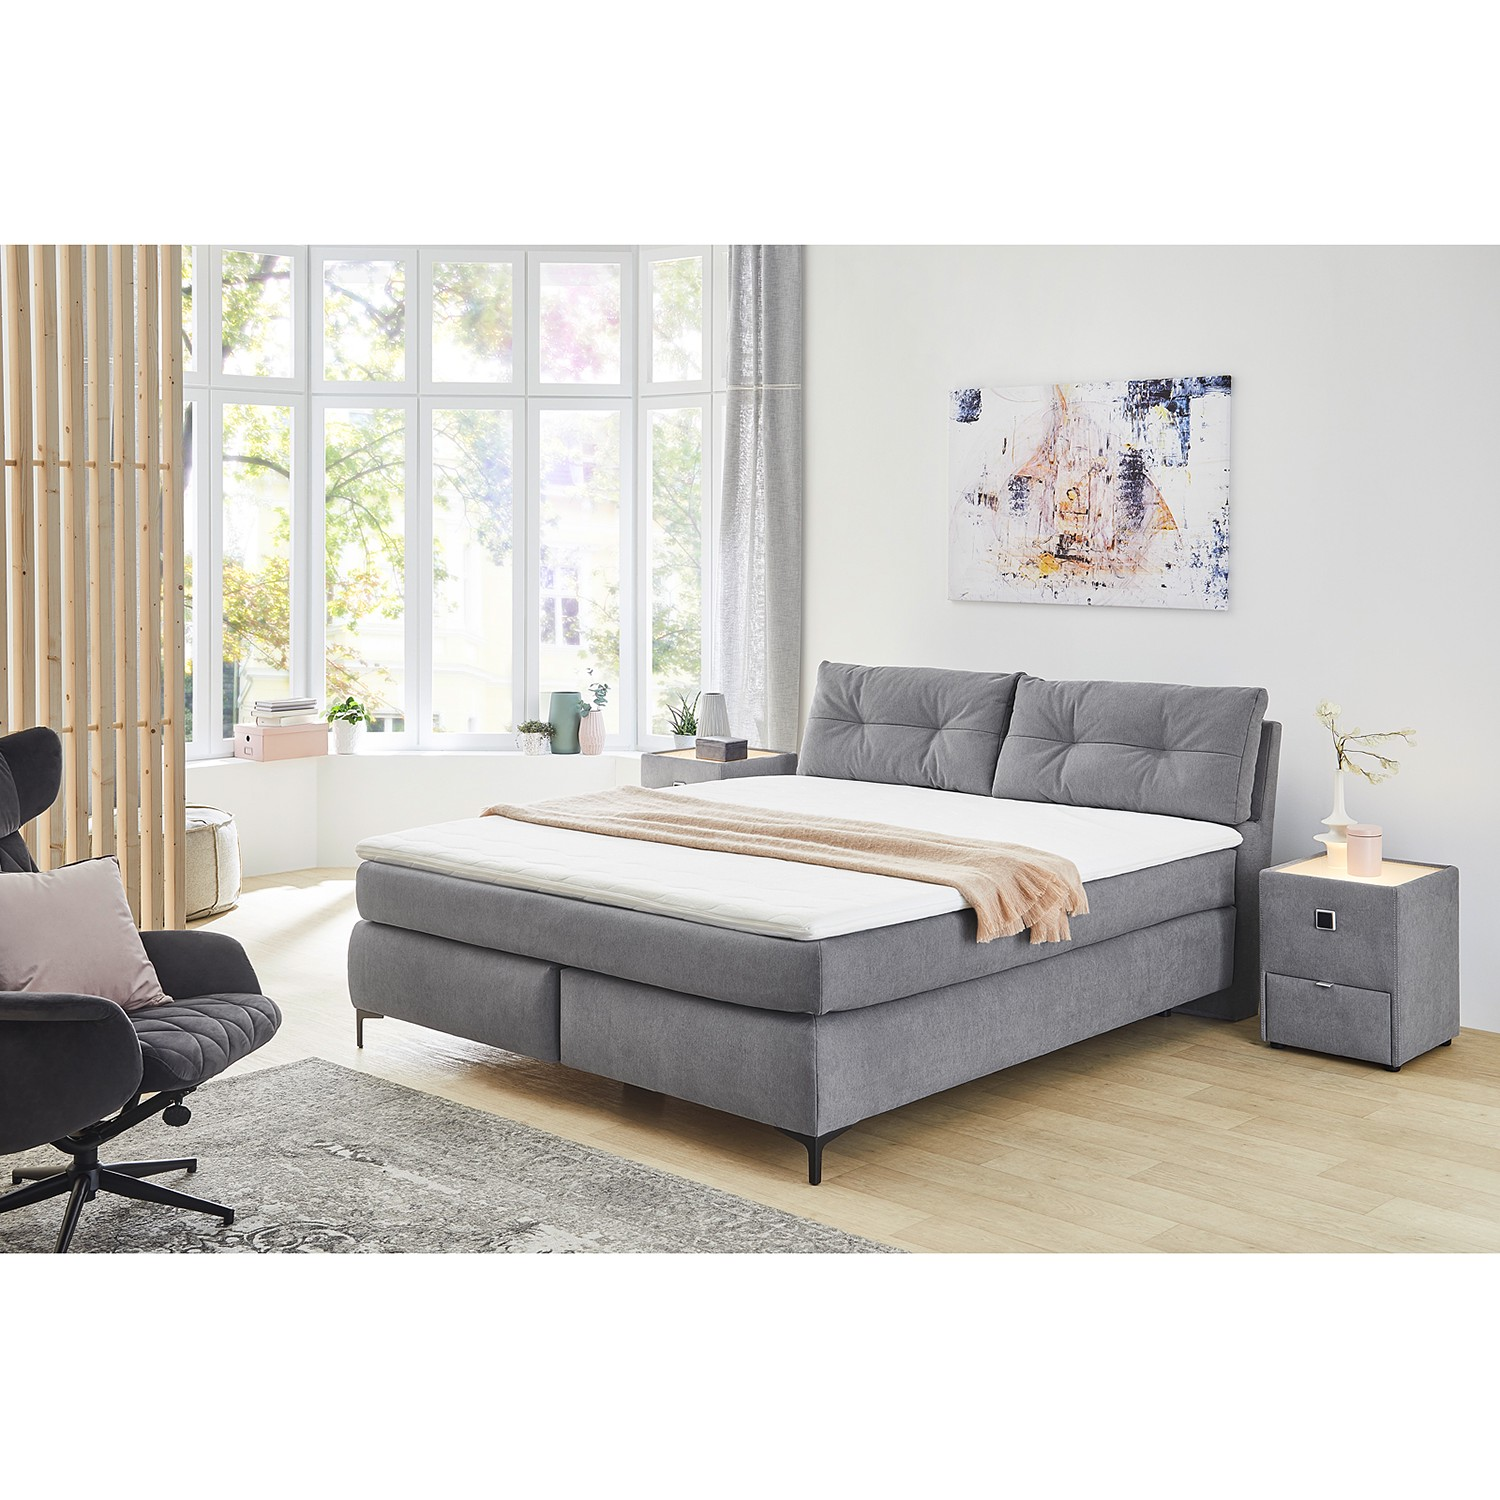 Lit boxspring Homein